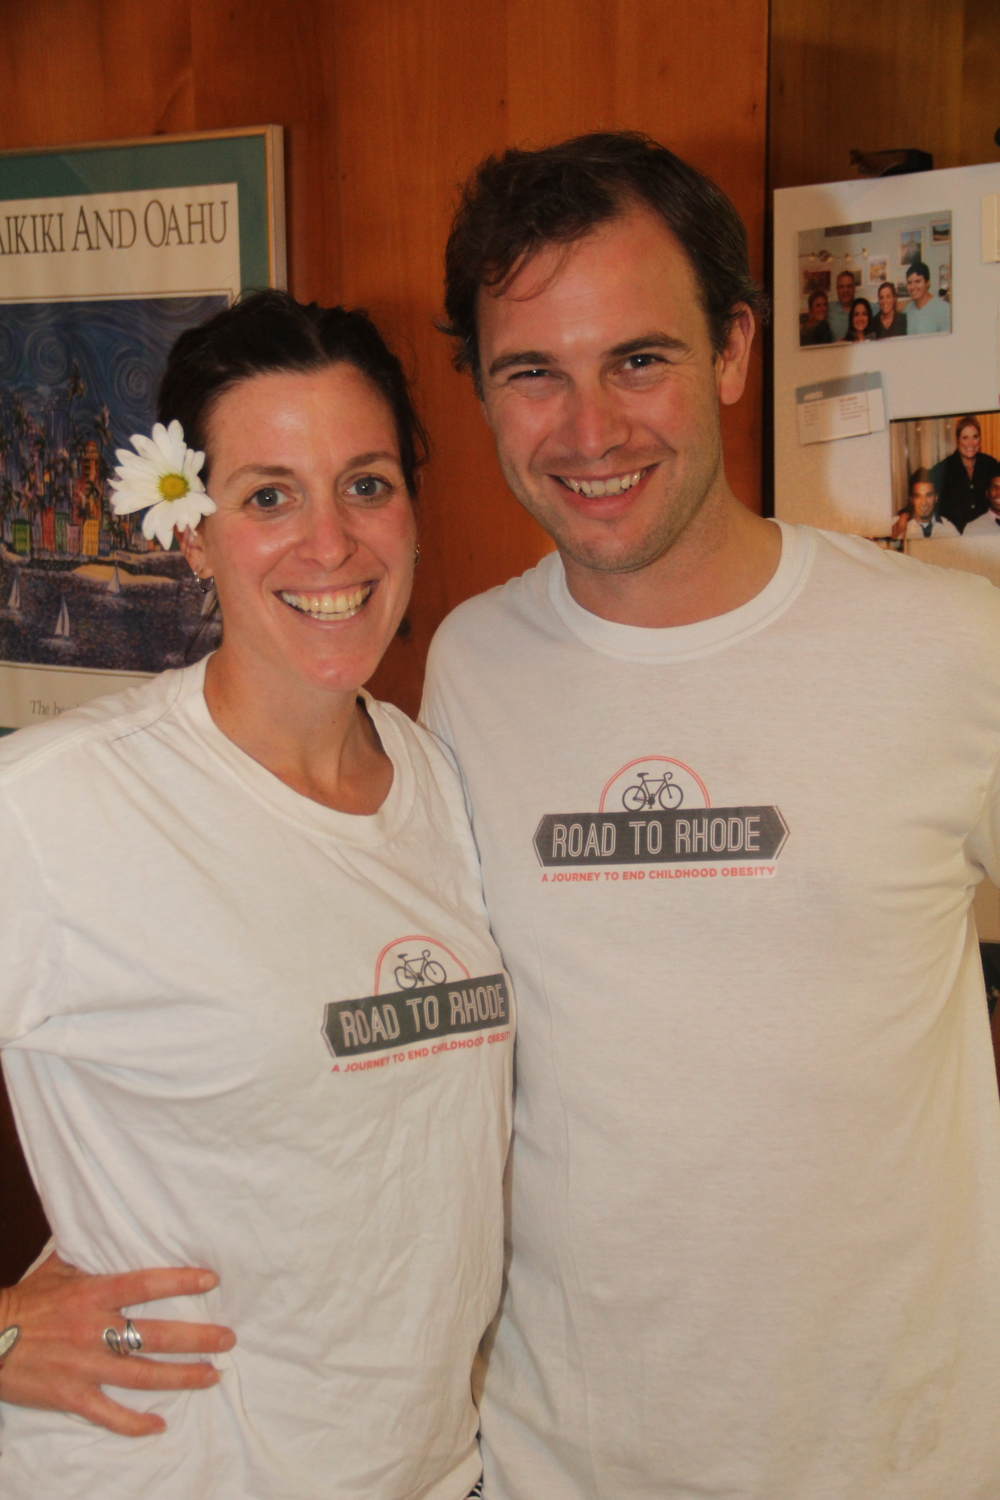 Josh Buckno and I, with our Road to Rhode t-shirts that Alison and her brother made for us!